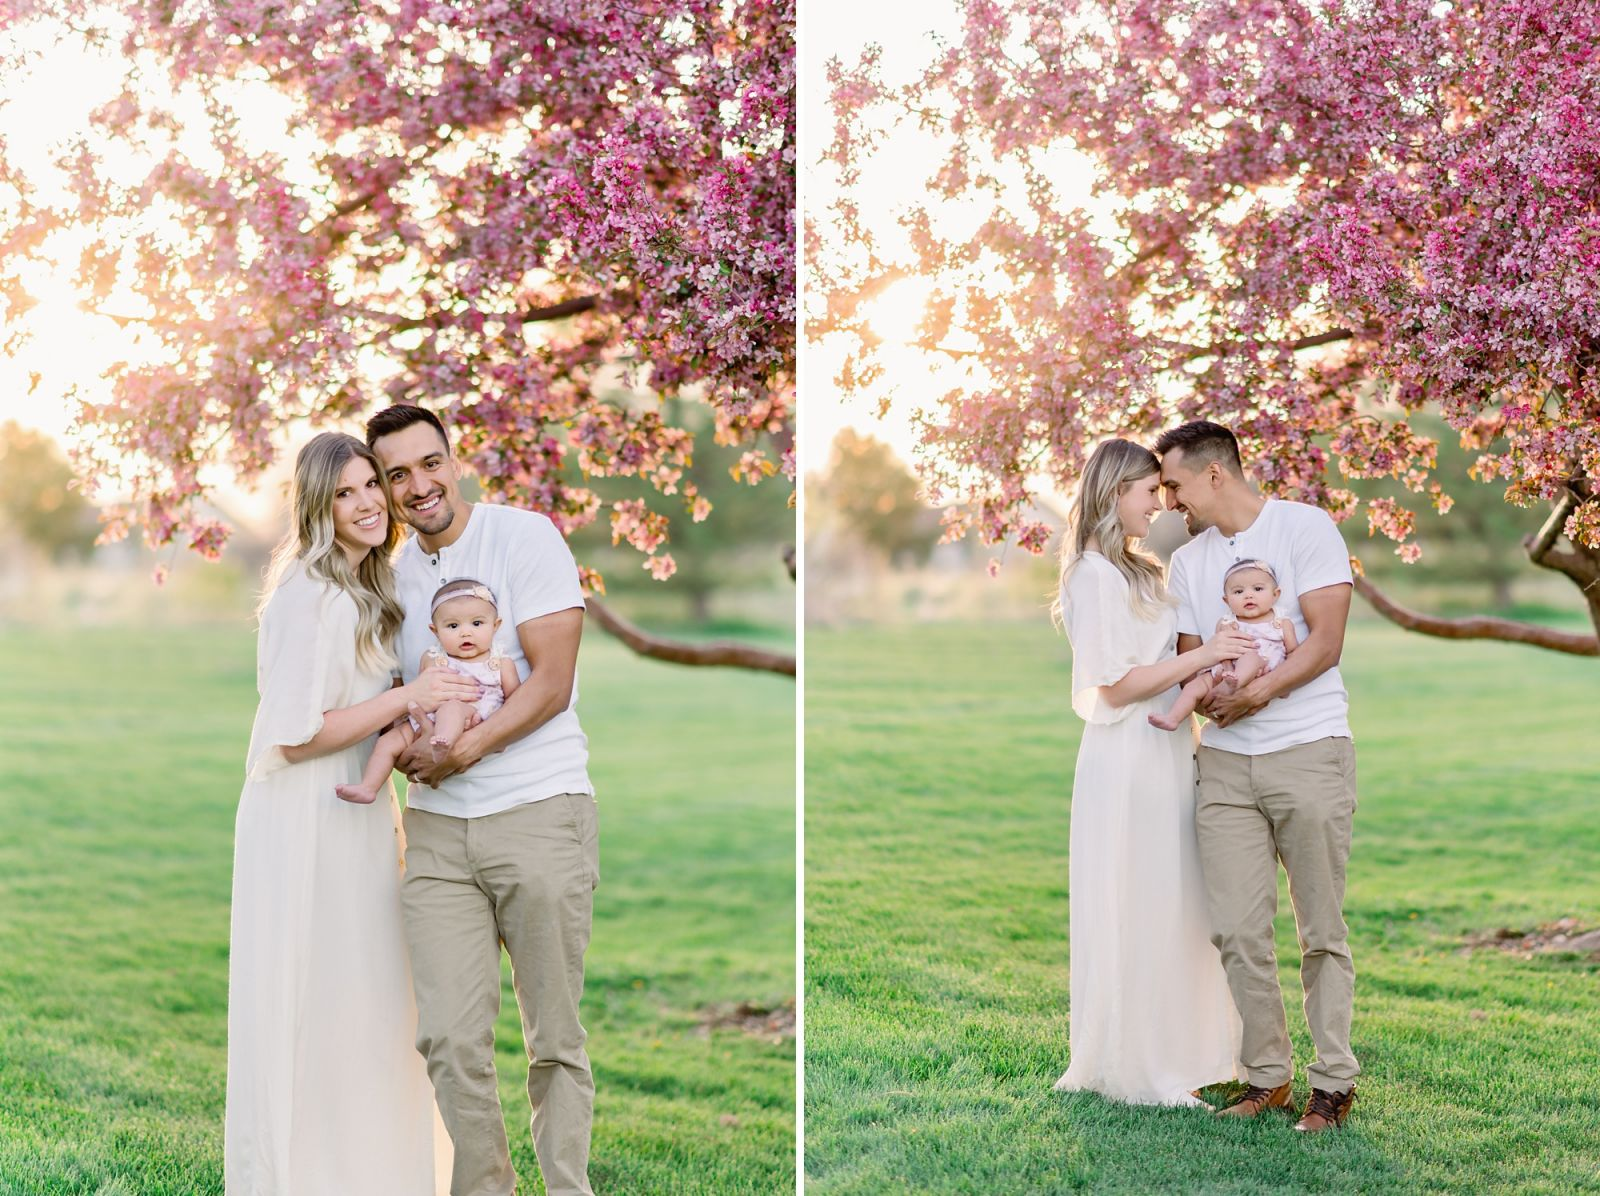 A new family of 3 gets family photos taken in front of the famous cherry blossoms in Denver, Colorado.